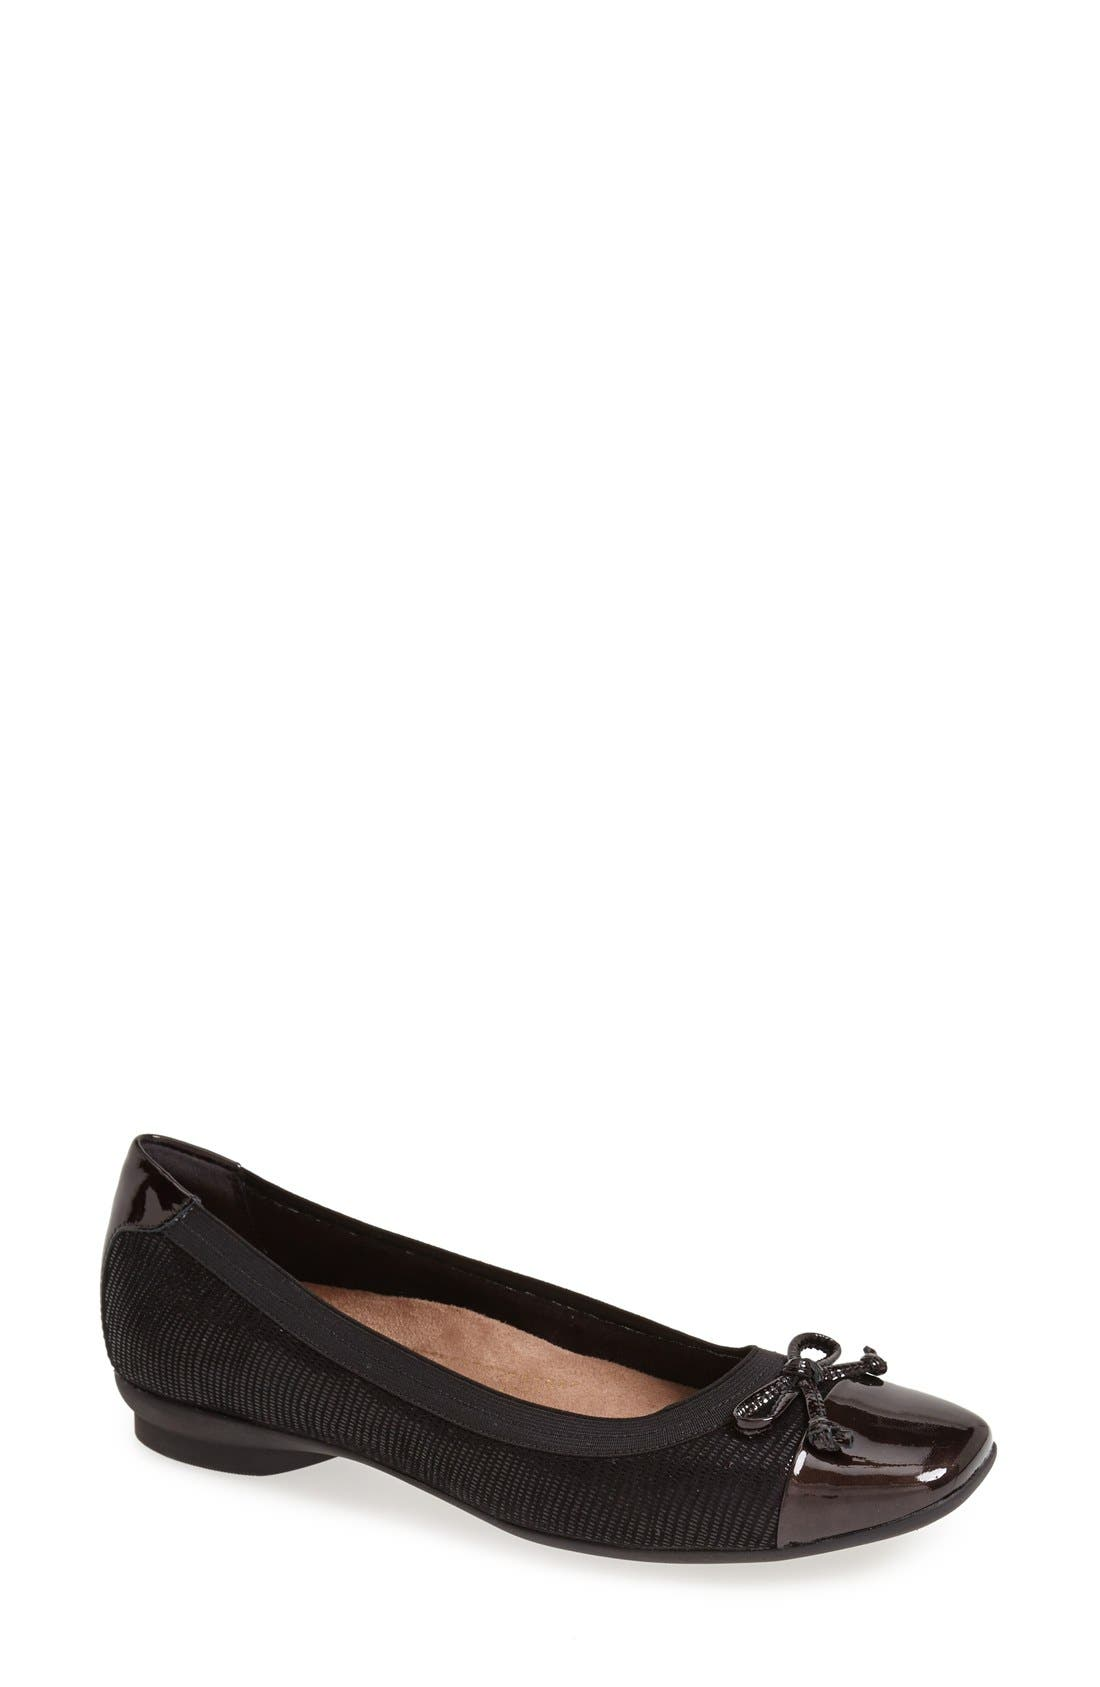 'Candra Glow' Flat,                         Main,                         color, Black Suede